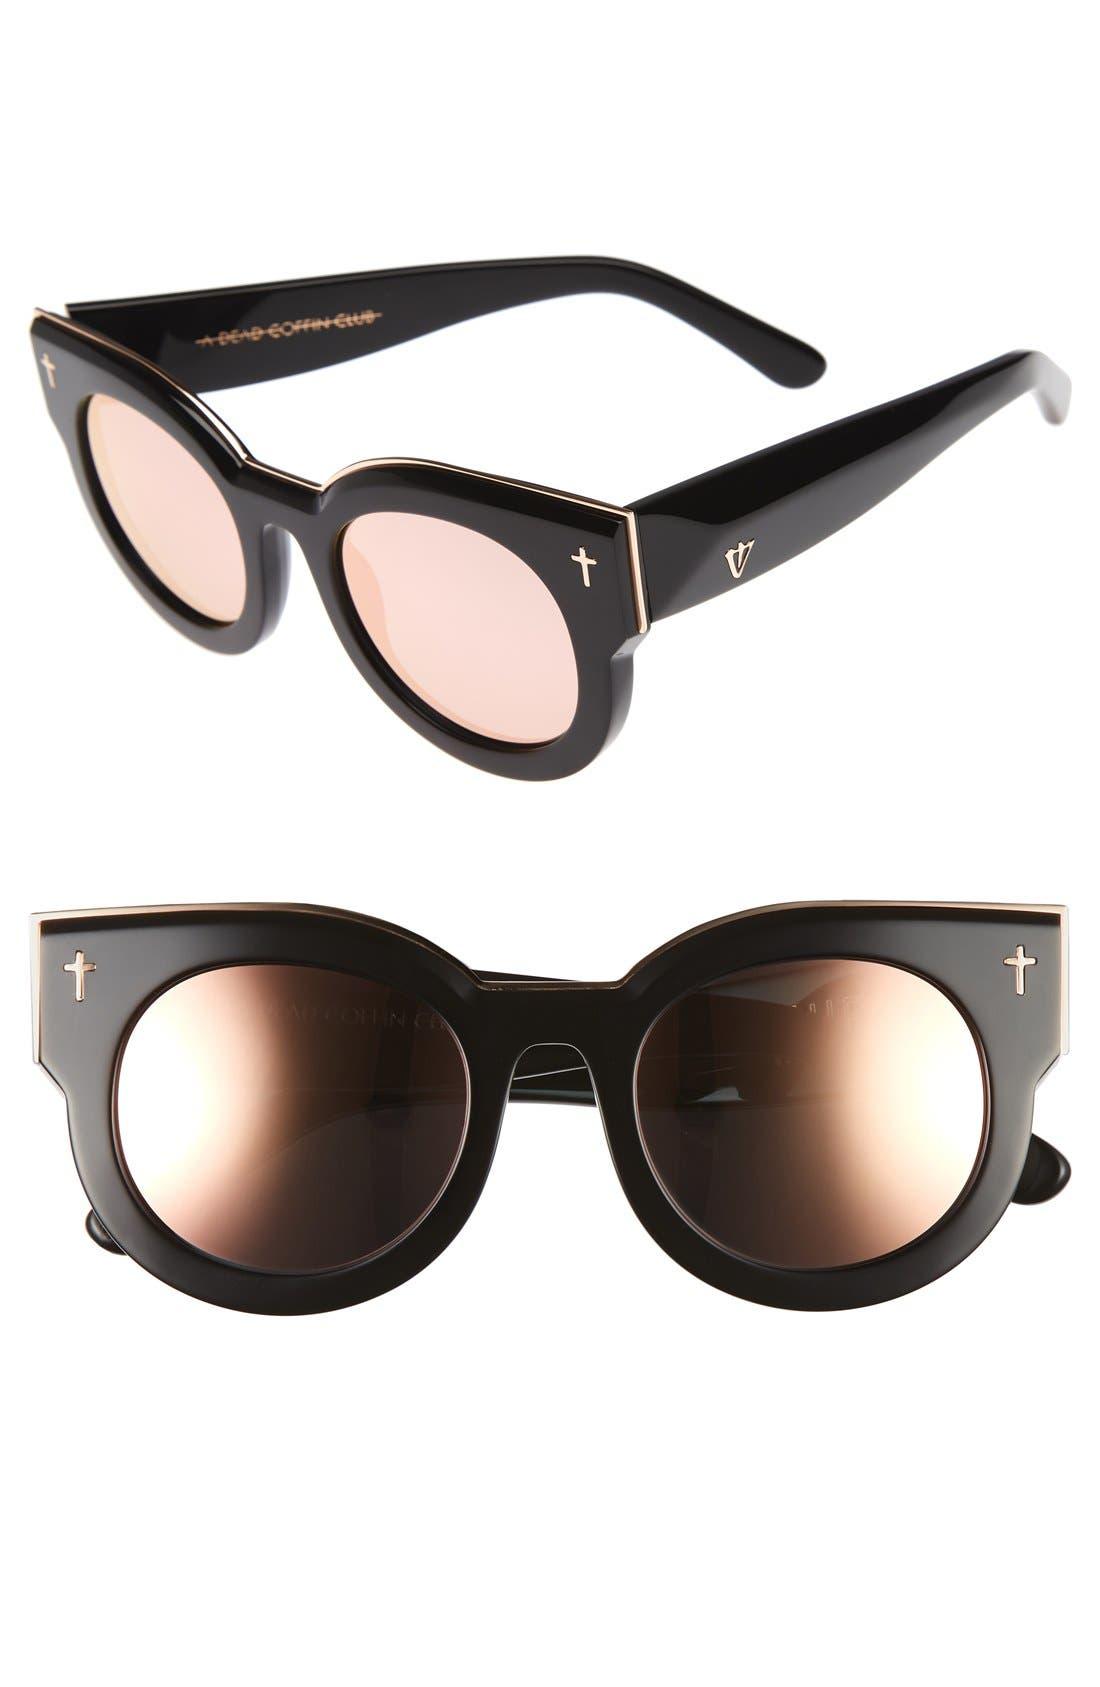 VALLEY 50mm ADCC Sunglasses